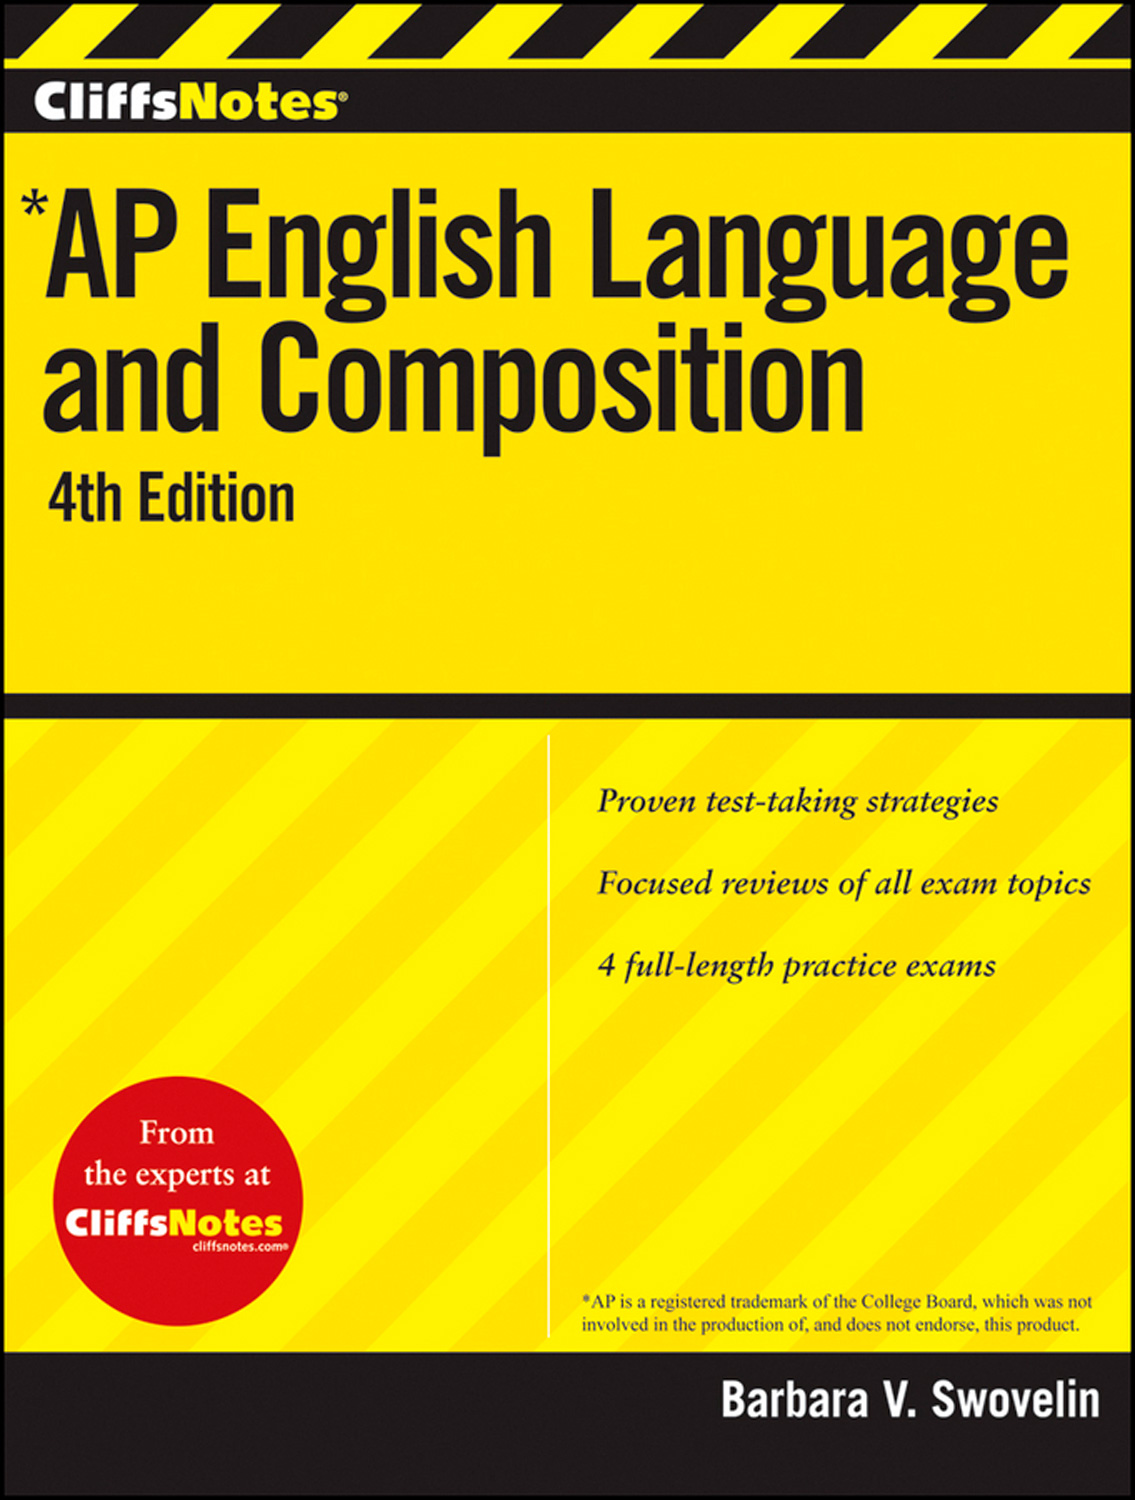 CliffsNotes AP English Language and Composition, 4th Edition-9781118128022